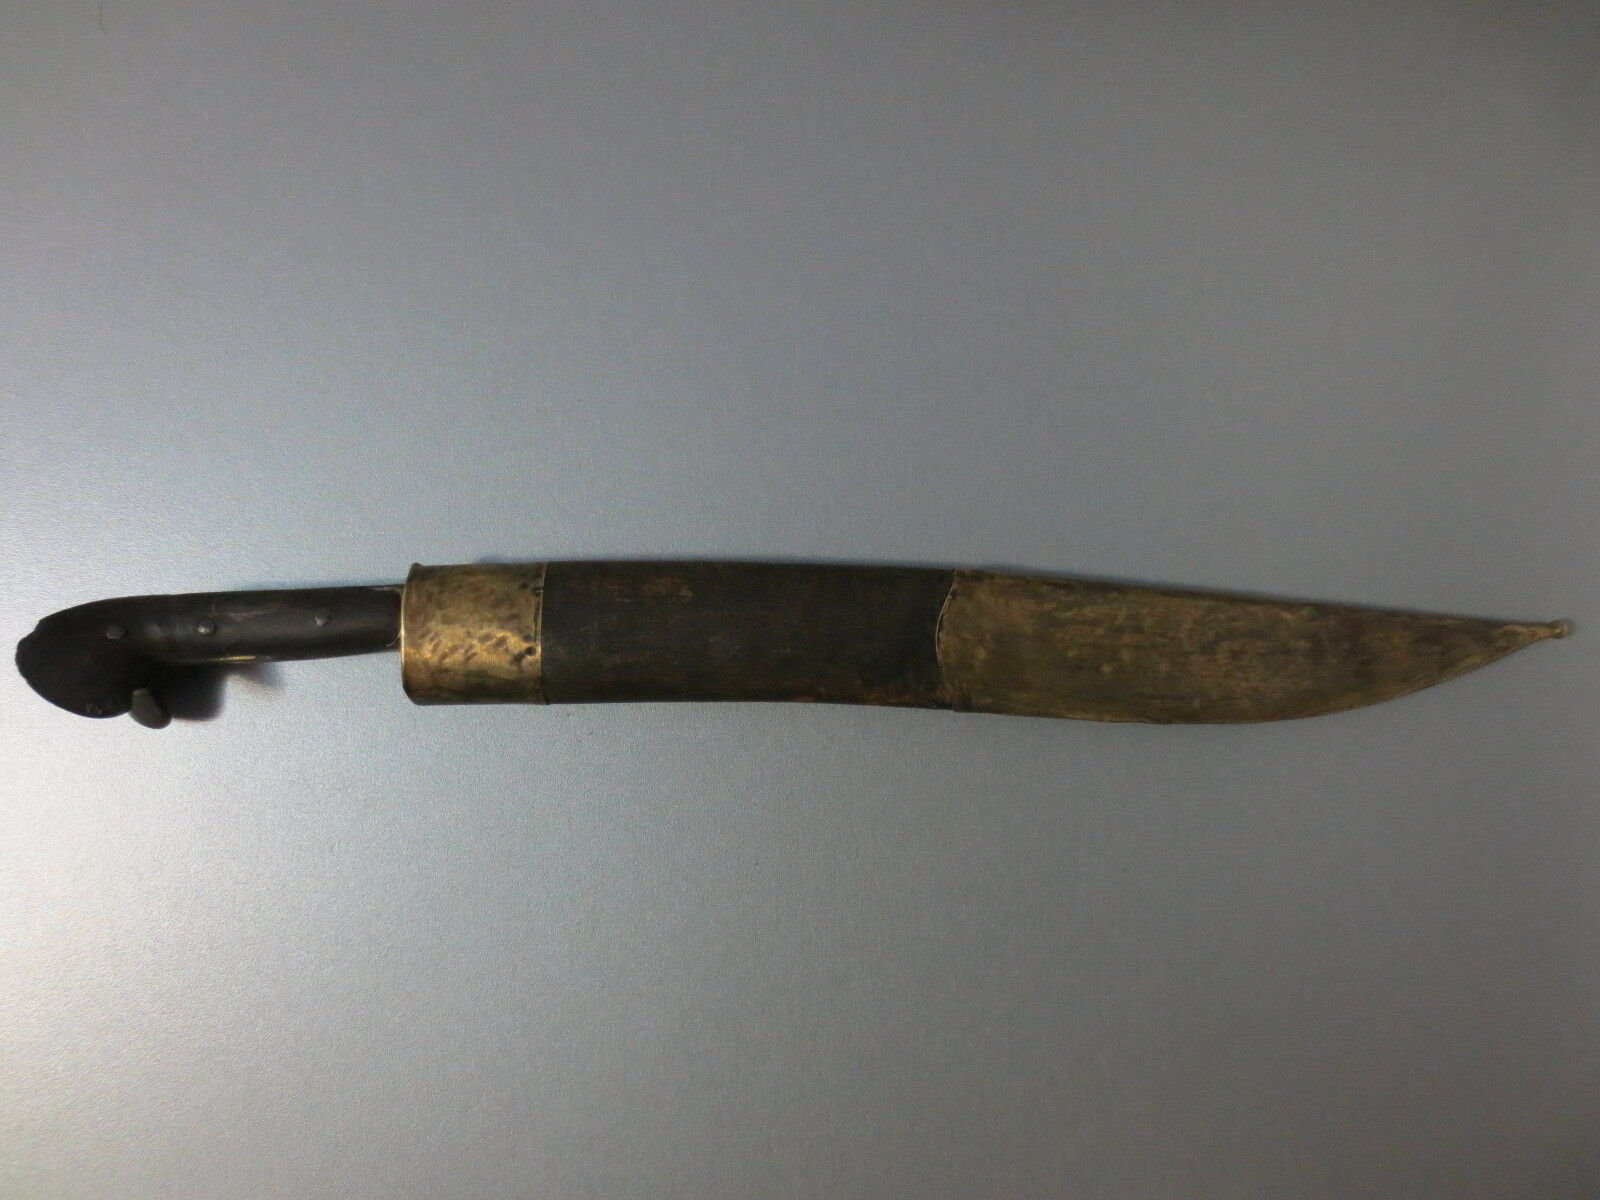 ANTIQUE Early 19th CENTURY OTTOMAN EMPIRE YATAGHAN LARGE DAGGER KNIFE ISLAMIC